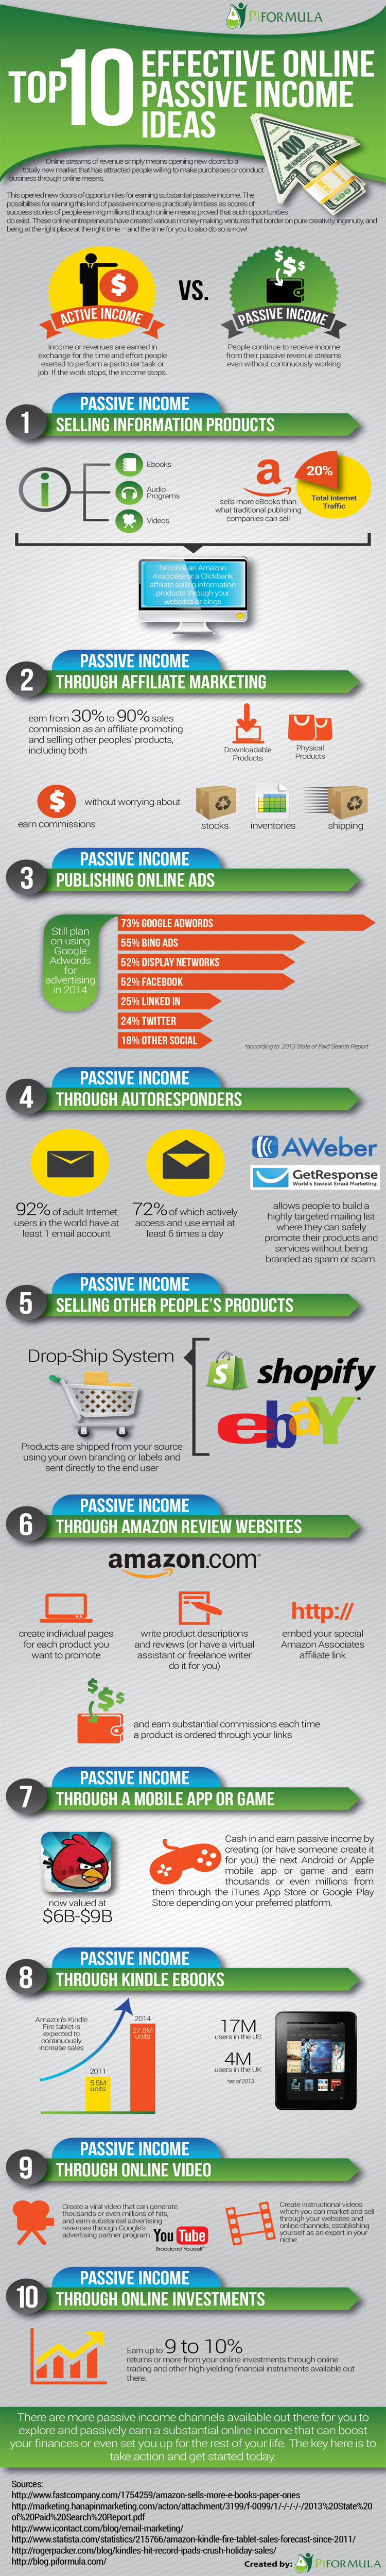 Infographic: Top 10 Effective Online Passive Income Ideas